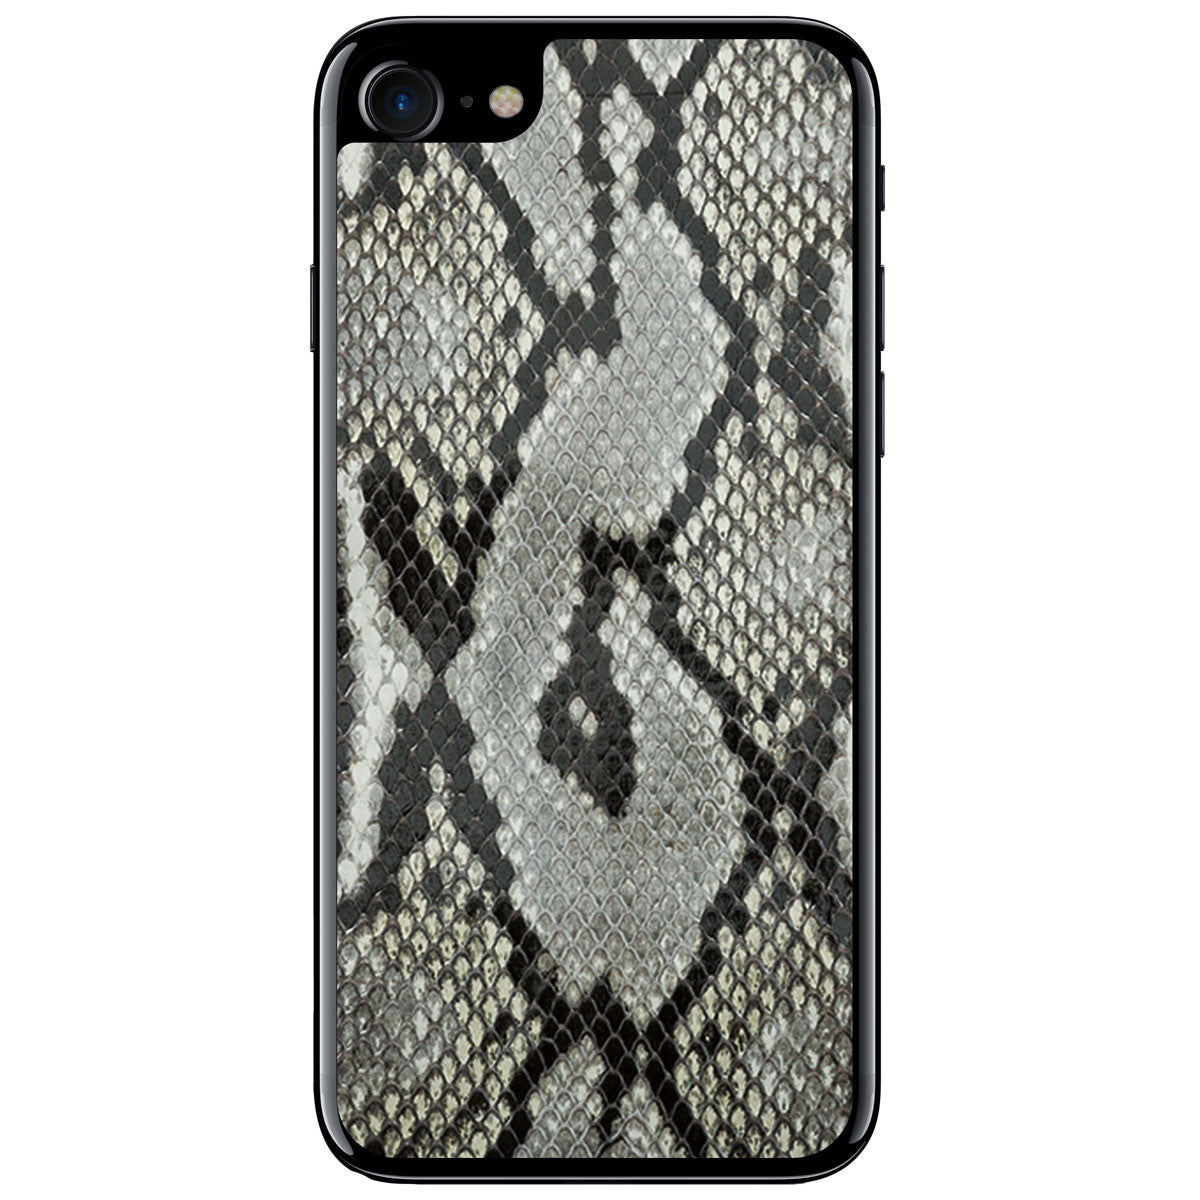 Python iPhone 8 Leather Skin